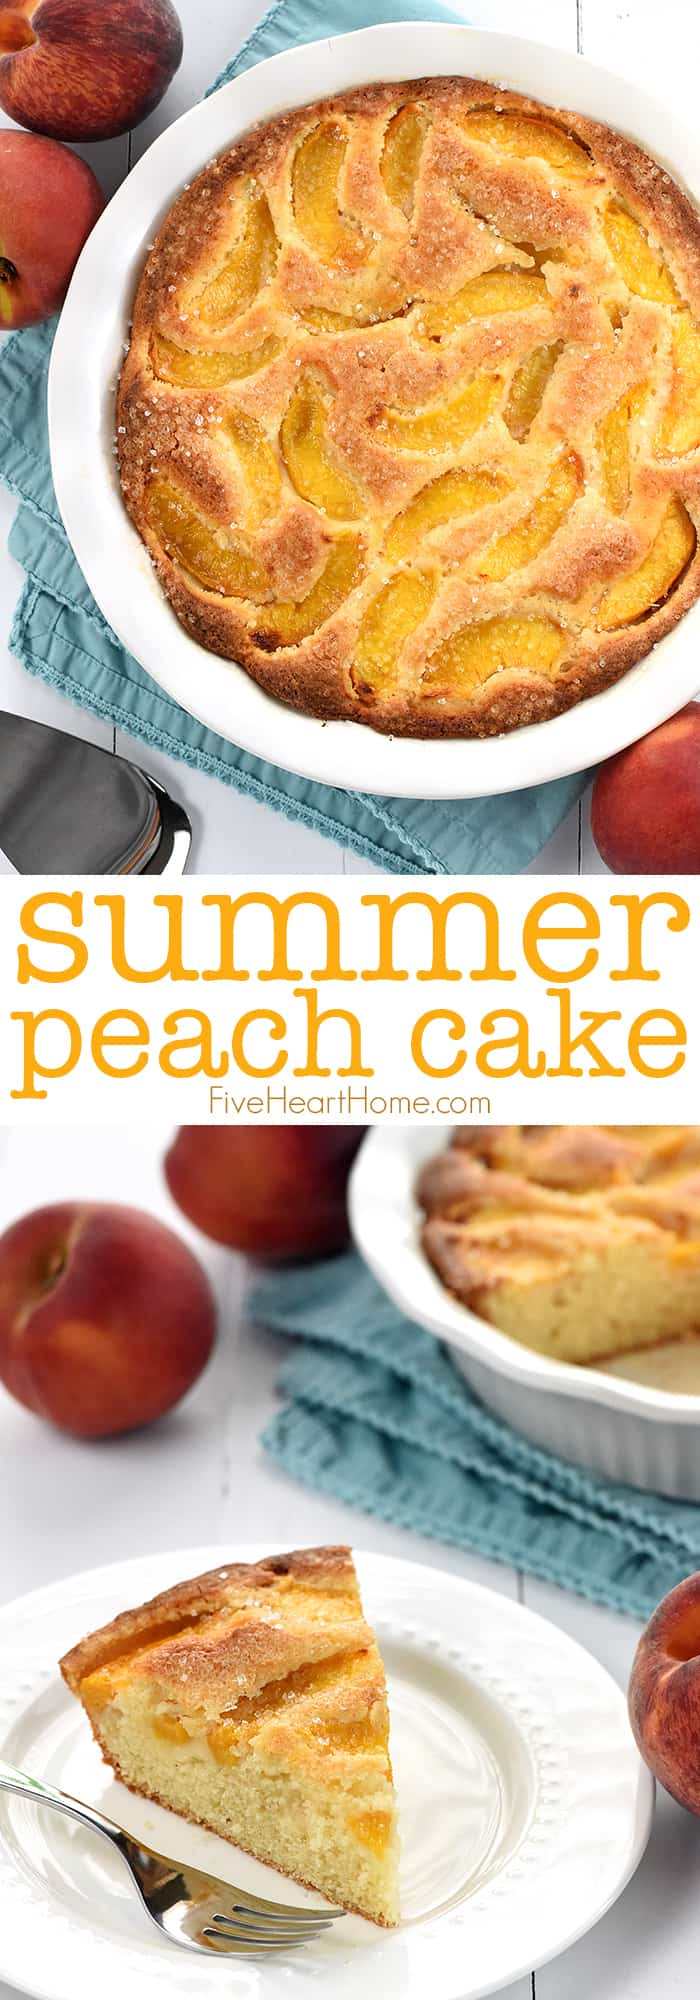 Summer Peach Cake ~ a delectable summer dessert recipe featuring fresh sliced peaches sunken into a sweet golden cake! | FiveHeartHome.com via @fivehearthome